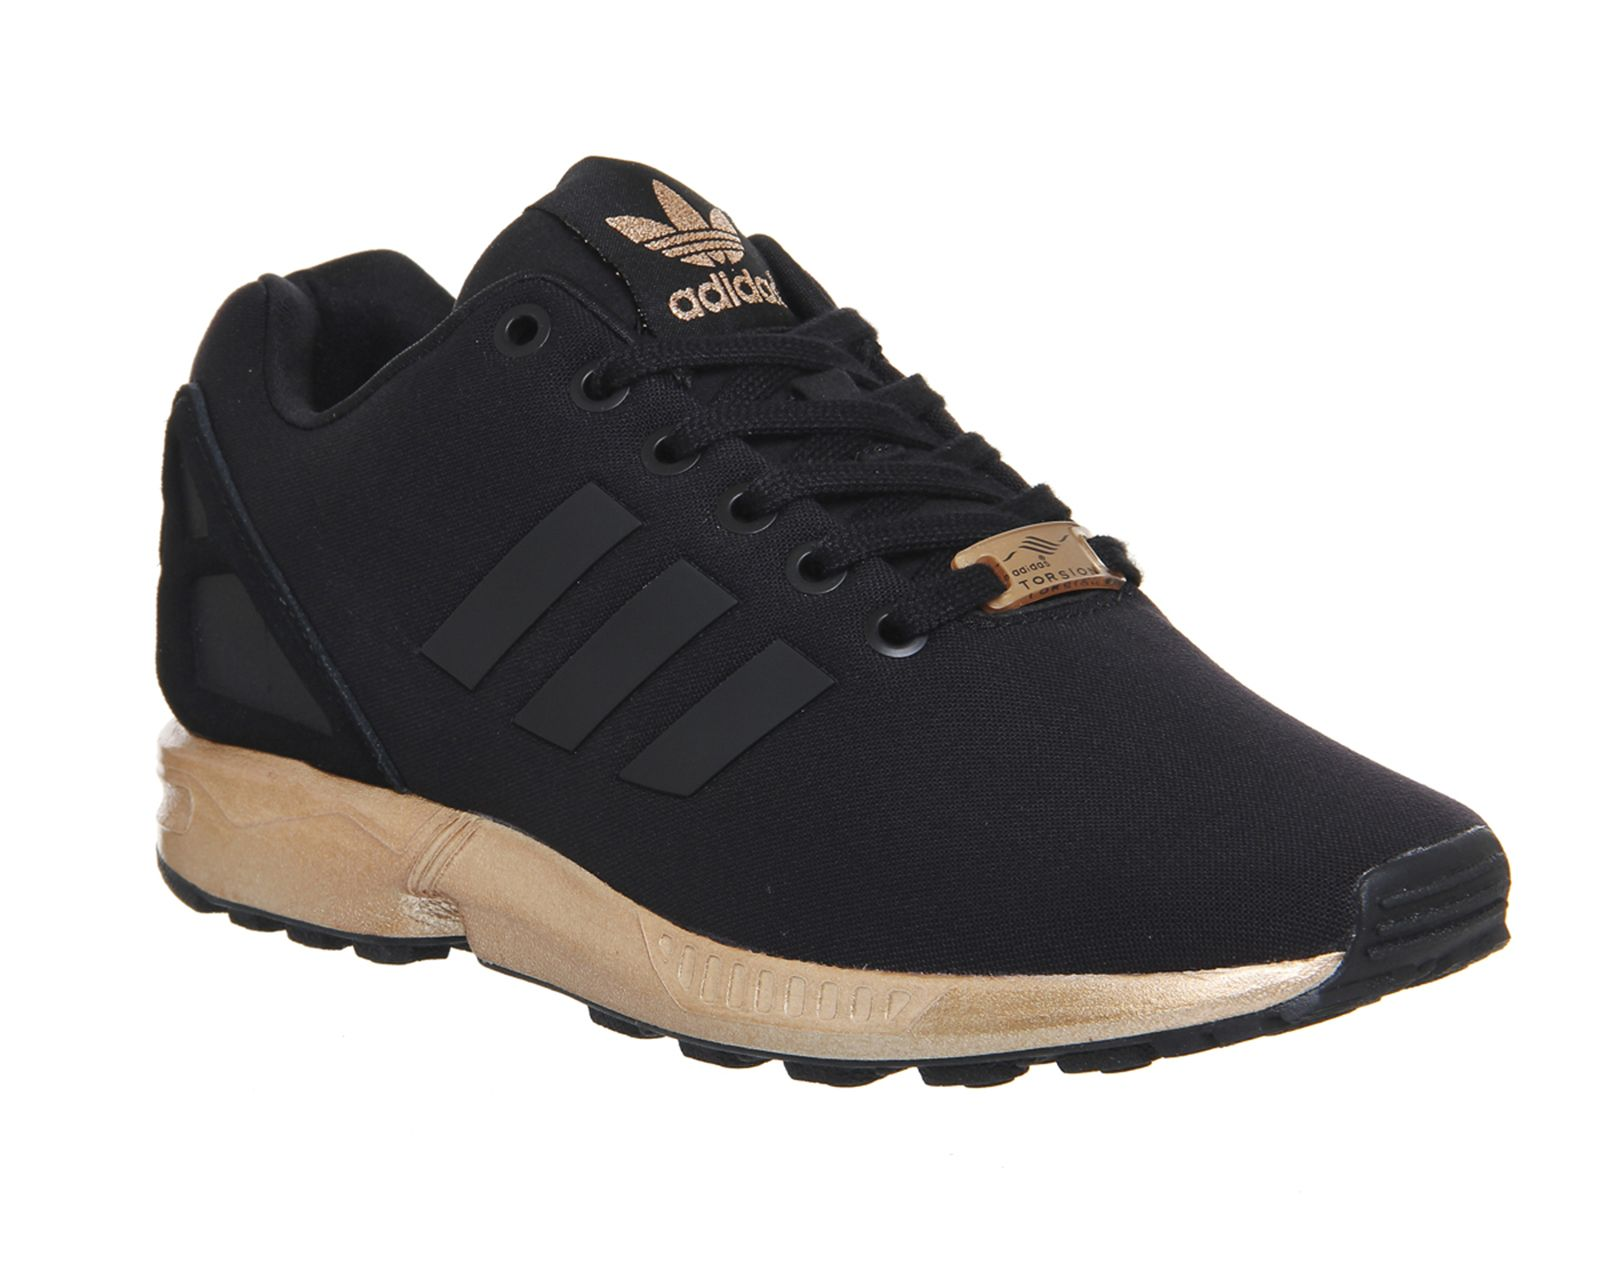 adidas zx flux black copper metallic